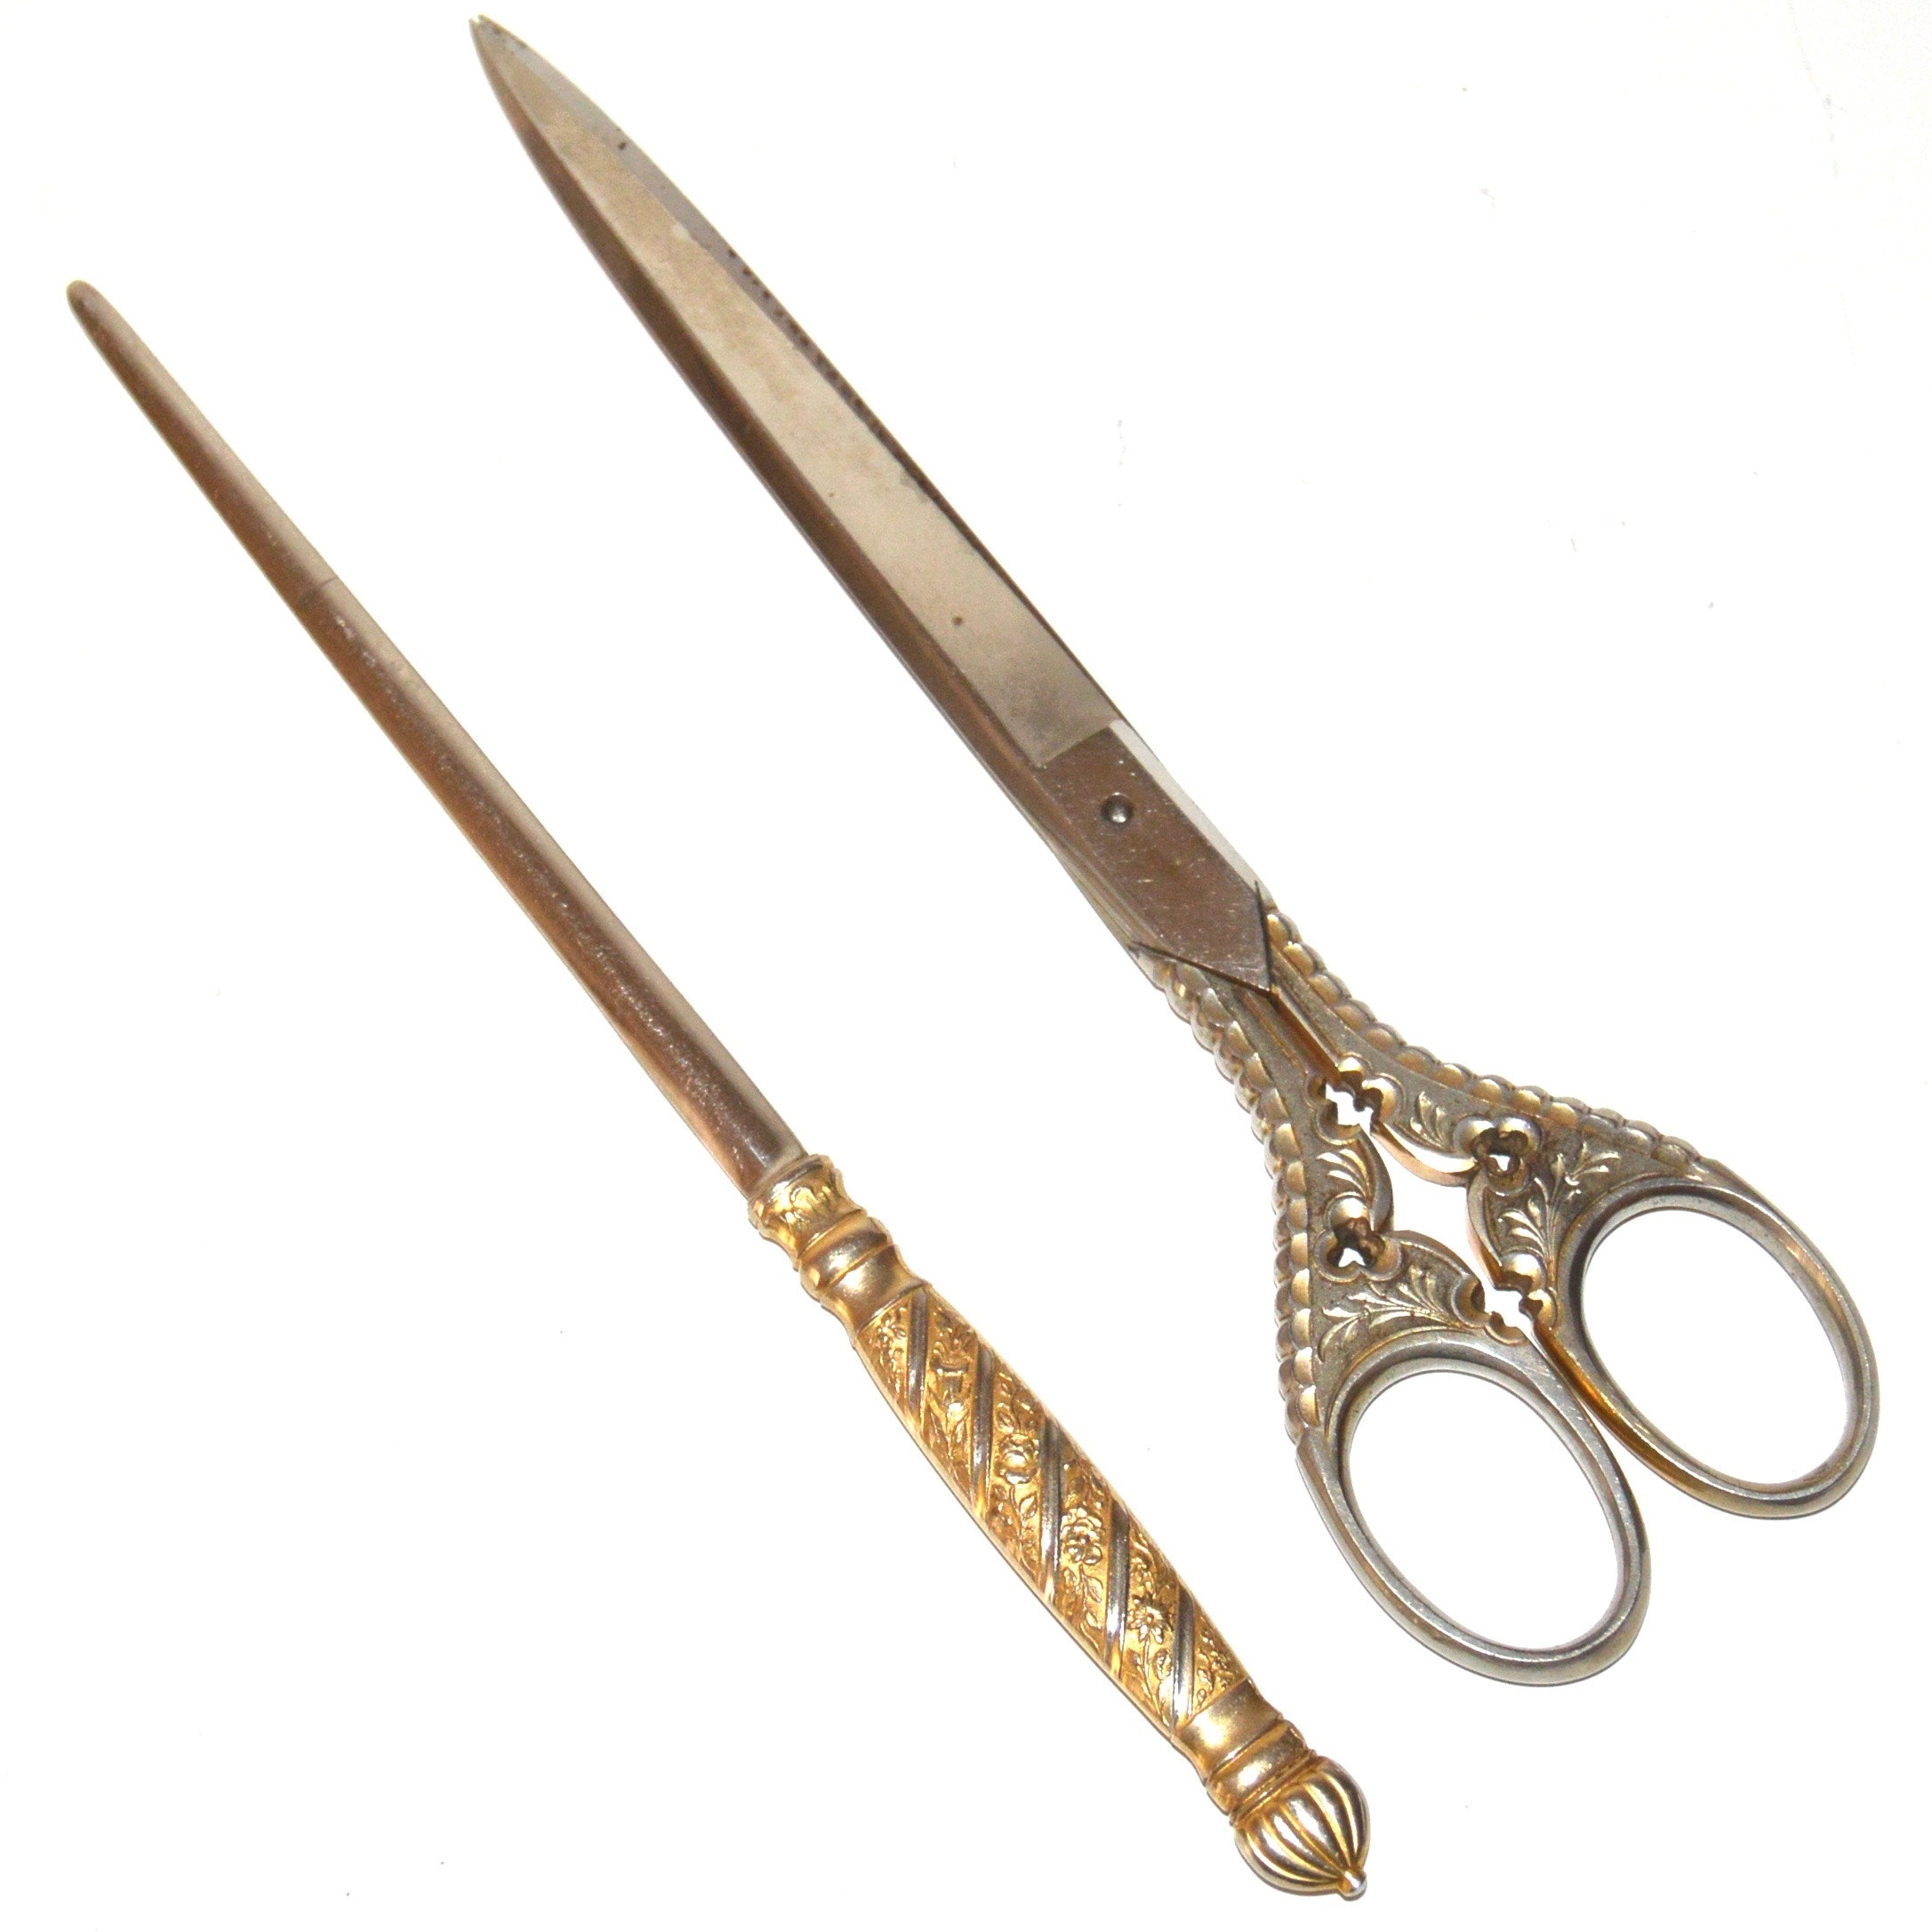 Vintage Cutting Shears and Letter Opener